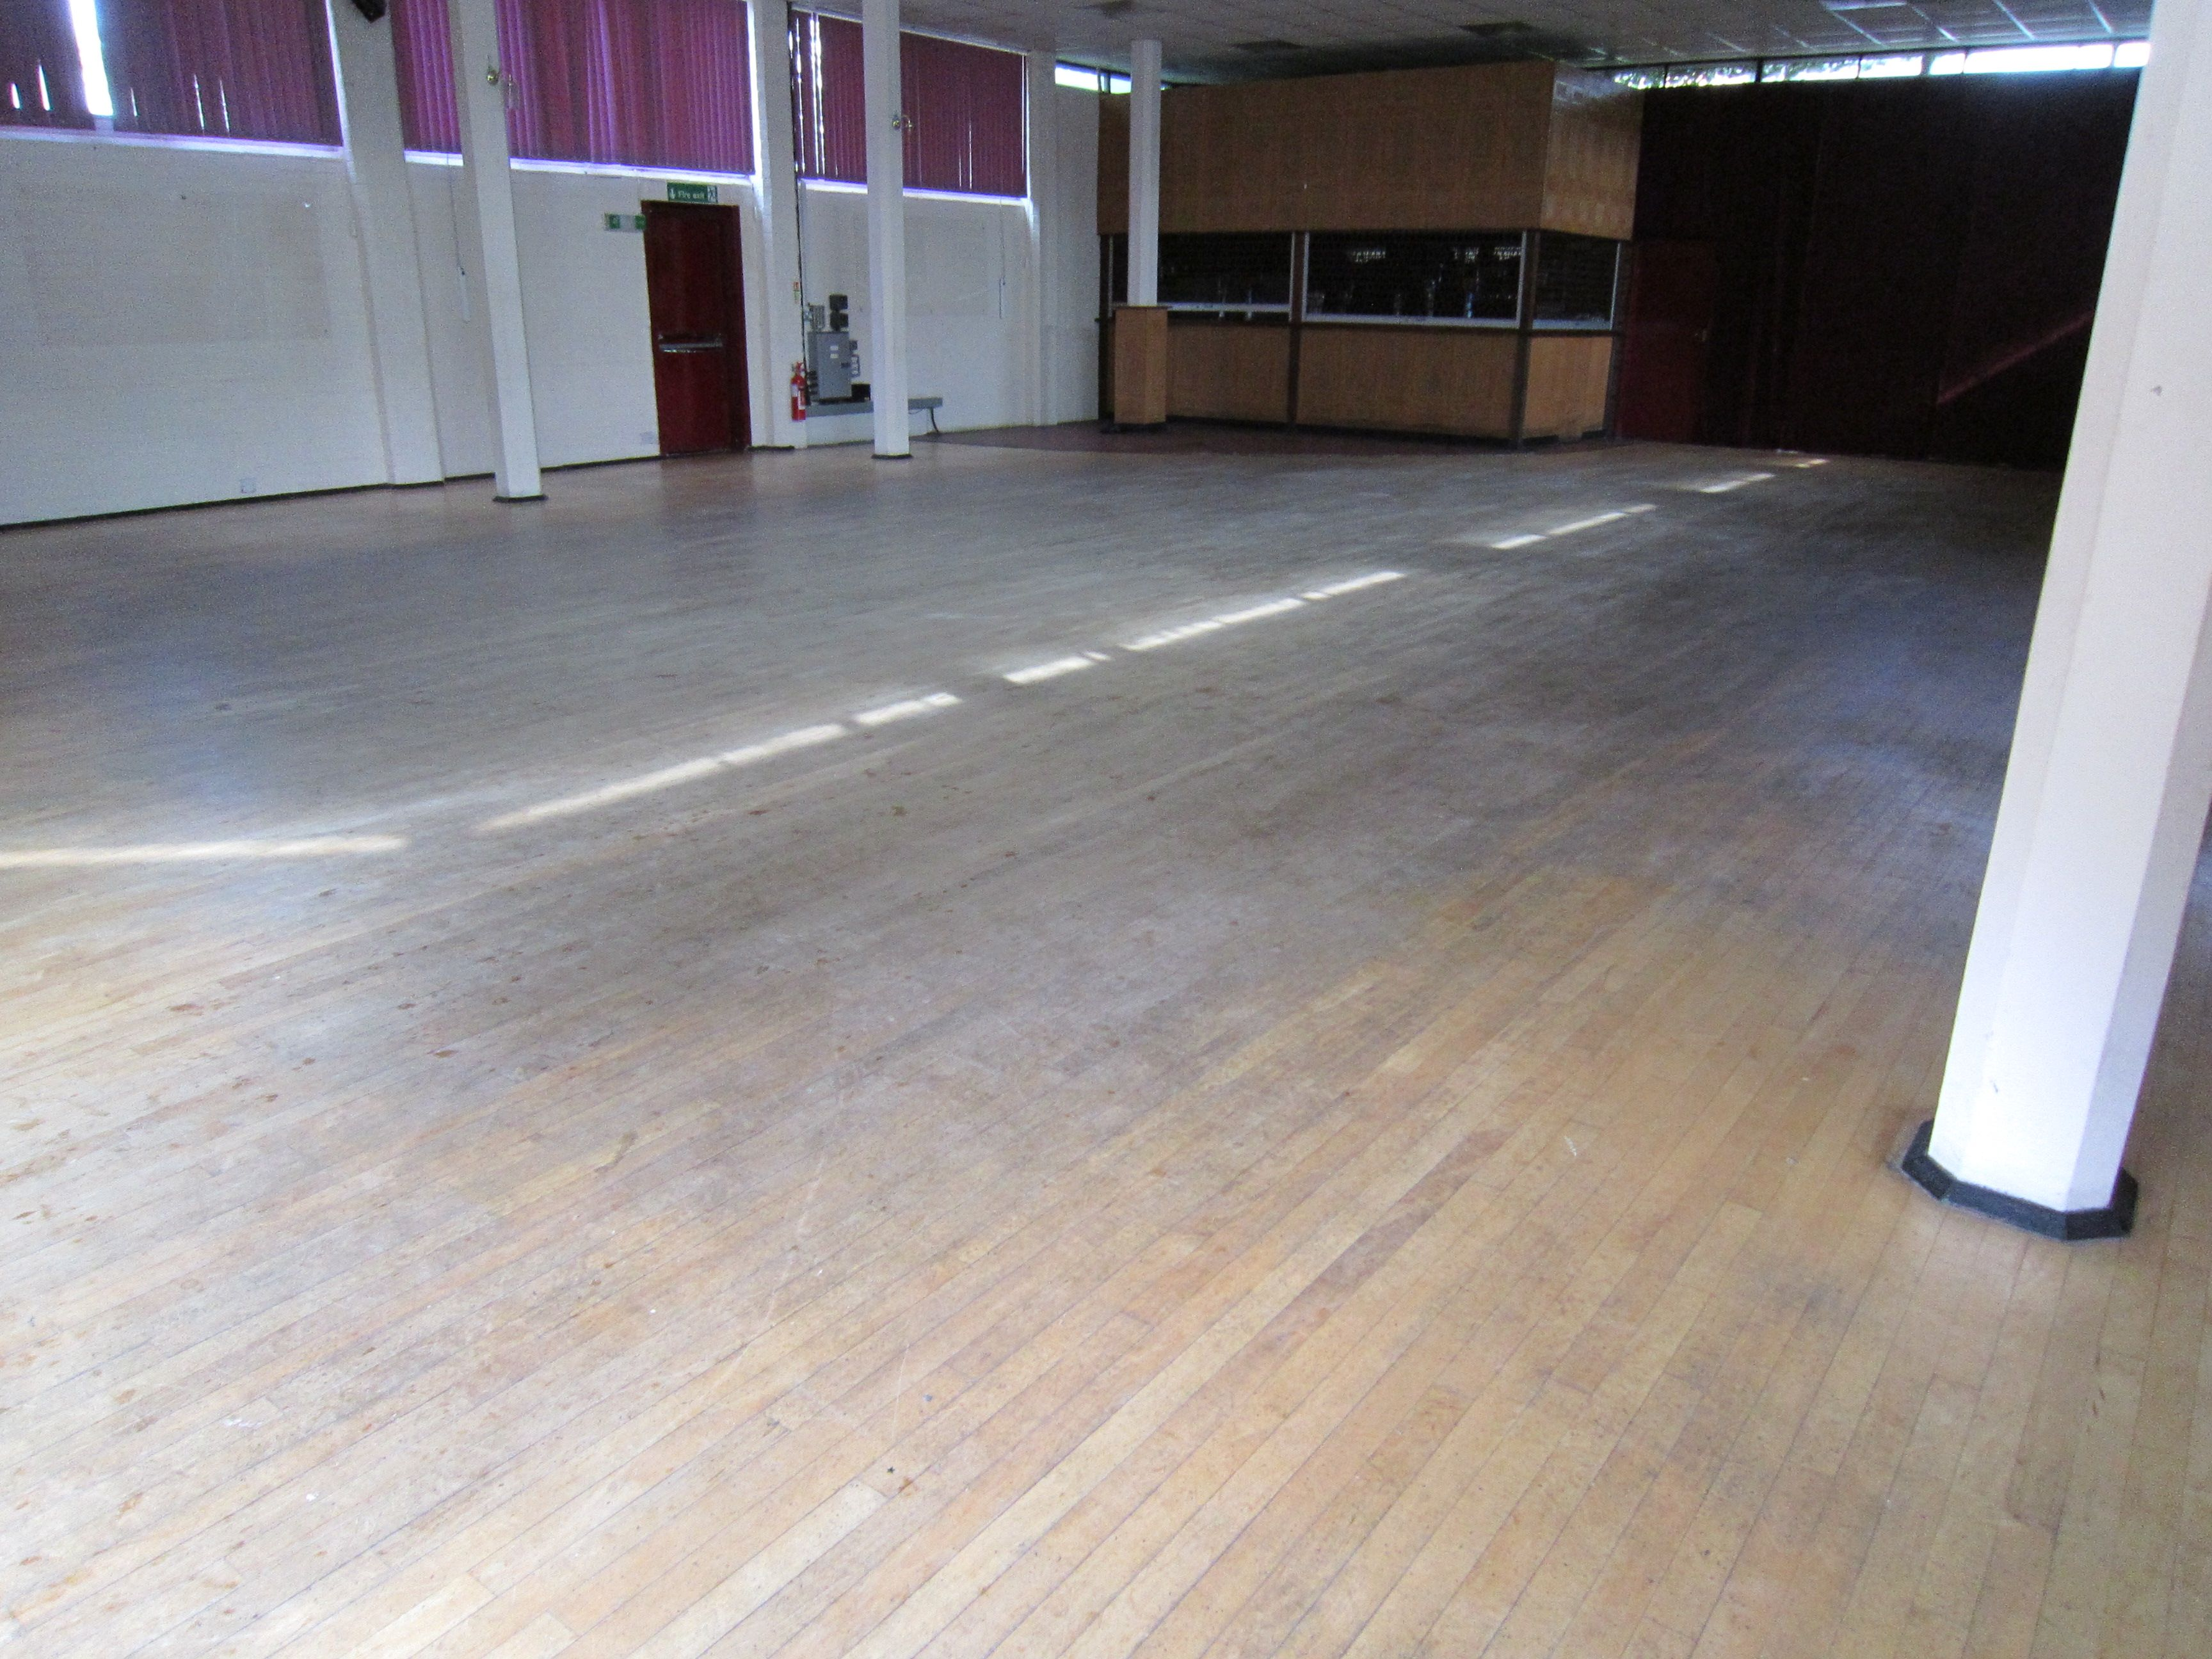 Dancers use this floor most nights and the wood floor was almost worn out when the Floorfixer lads arrived to restore it